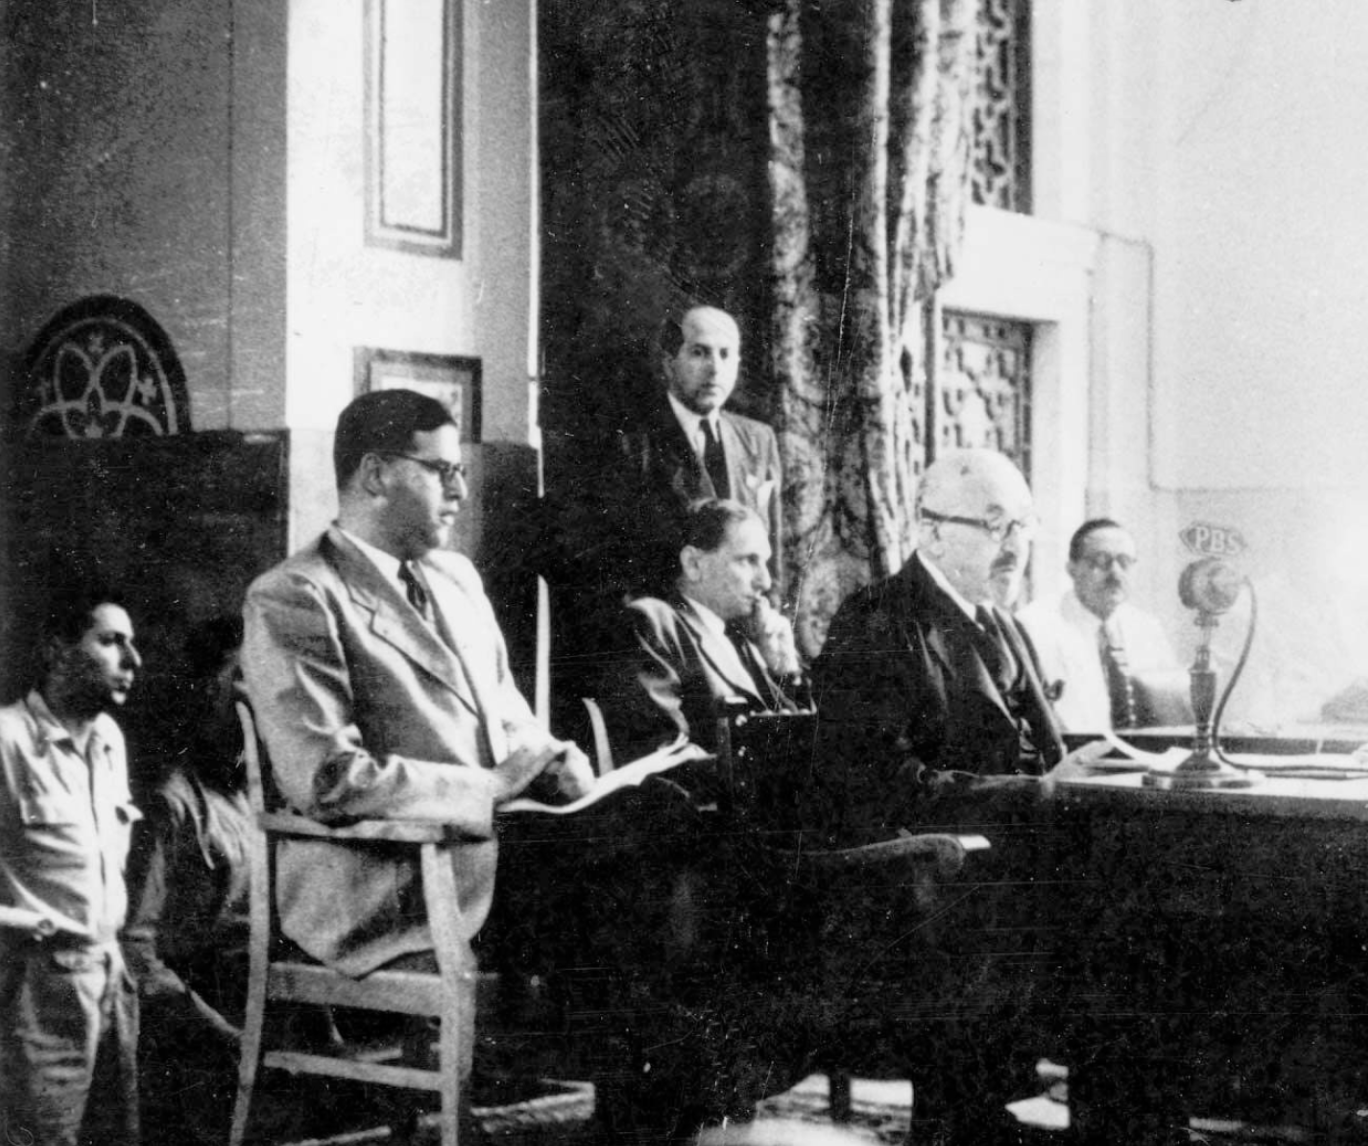 Chaim Weizmann giving his testimony to UNCSOP on July 8, 1947.